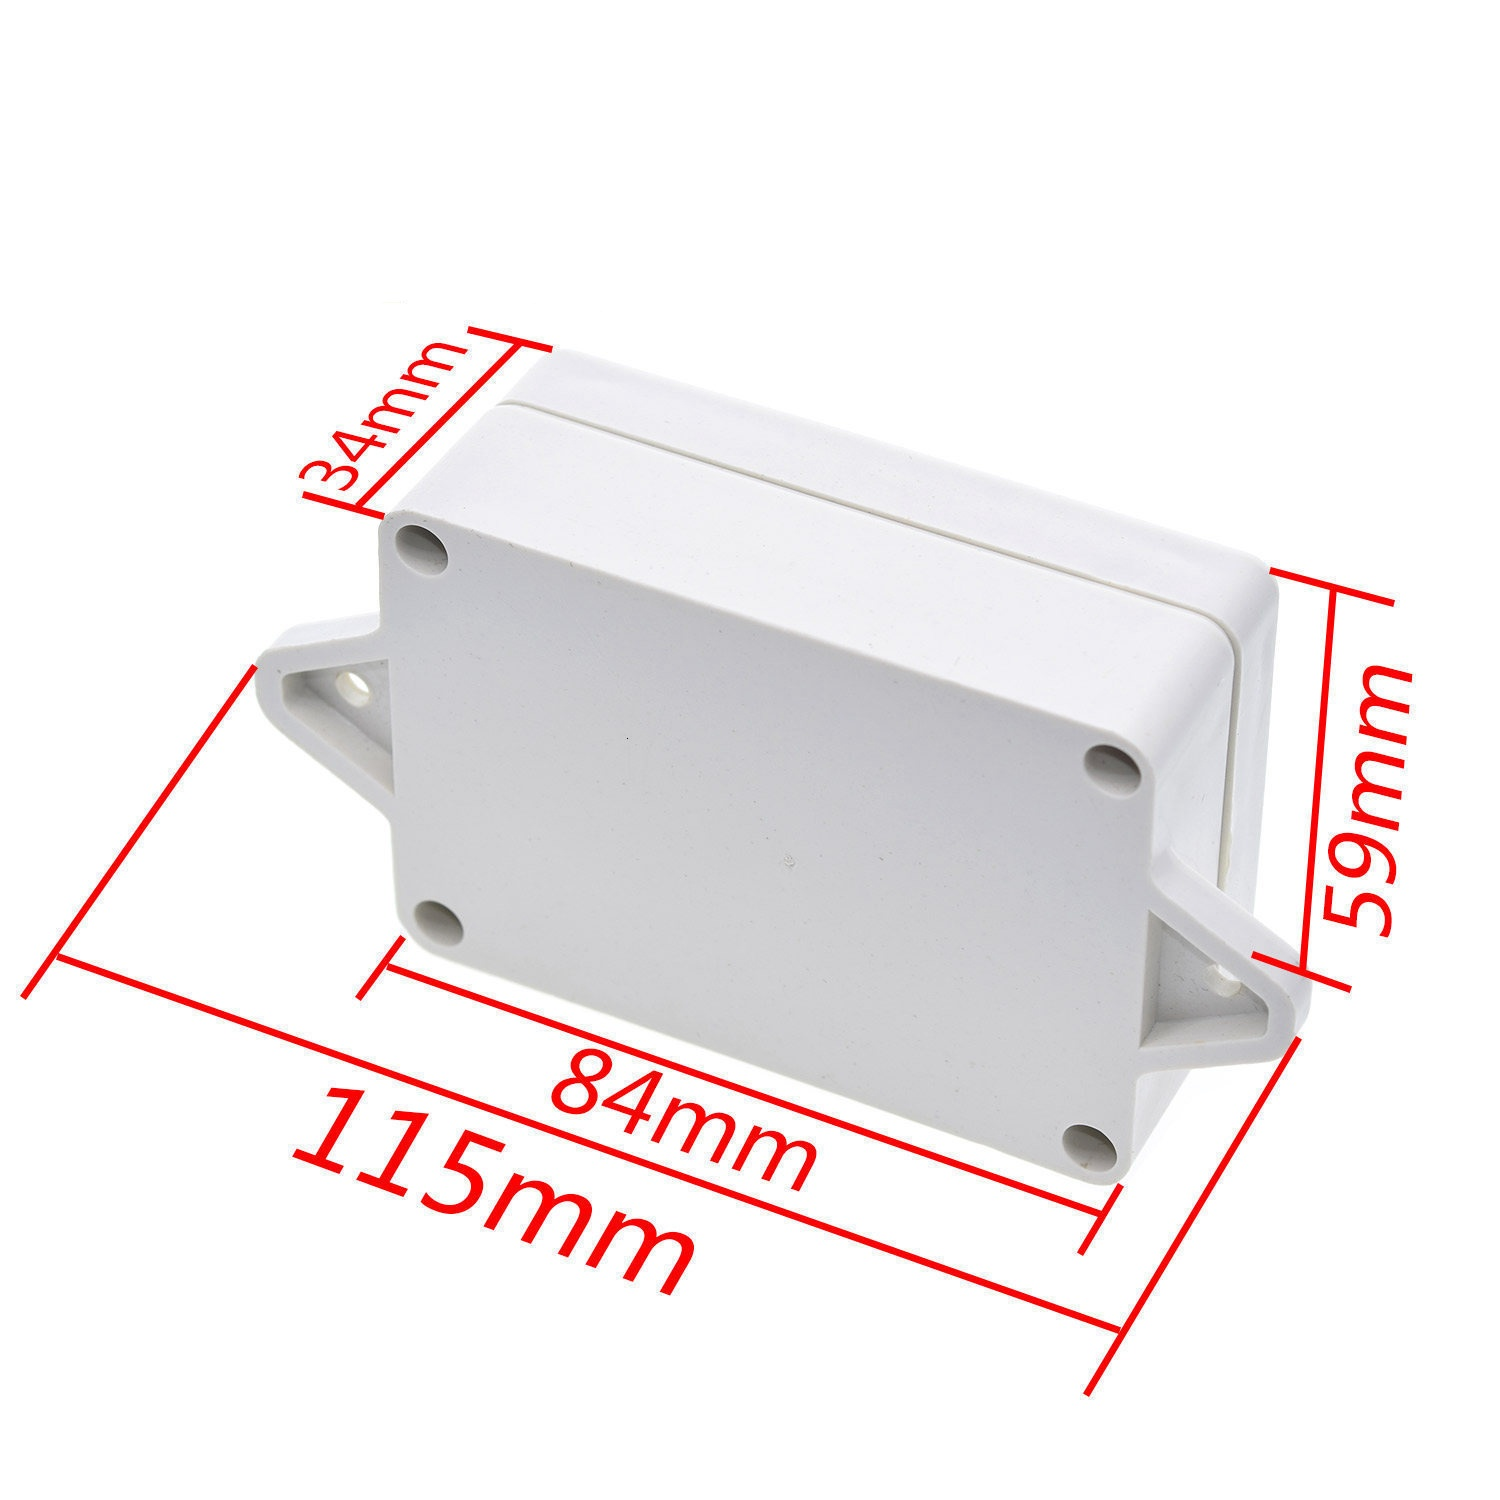 85x58x33mm Waterproof Cover Plastic Electronic Cable Project Box Enclosure Case DIY